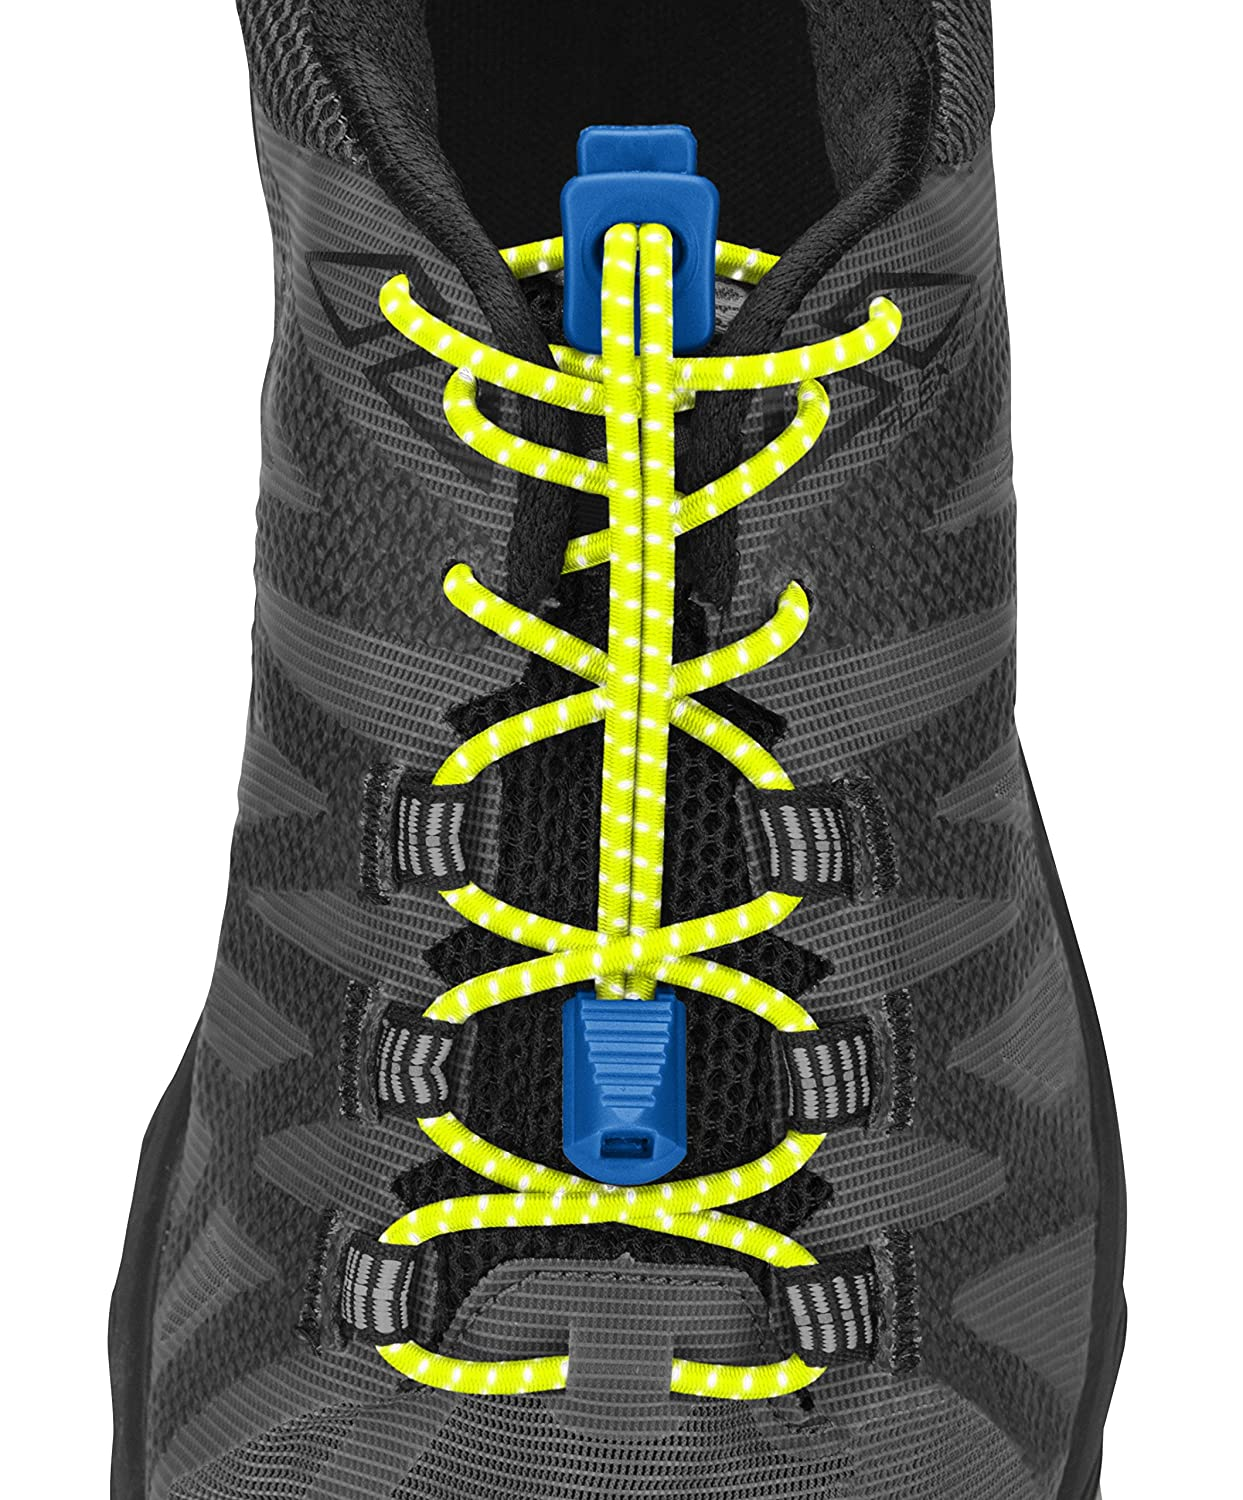 Elastic No Tie Shoe Laces for Running and Active Sports Steel Grey One Size SHOCK DOCTOR NATHAN NS1171-0198-00 Nathan Reflective